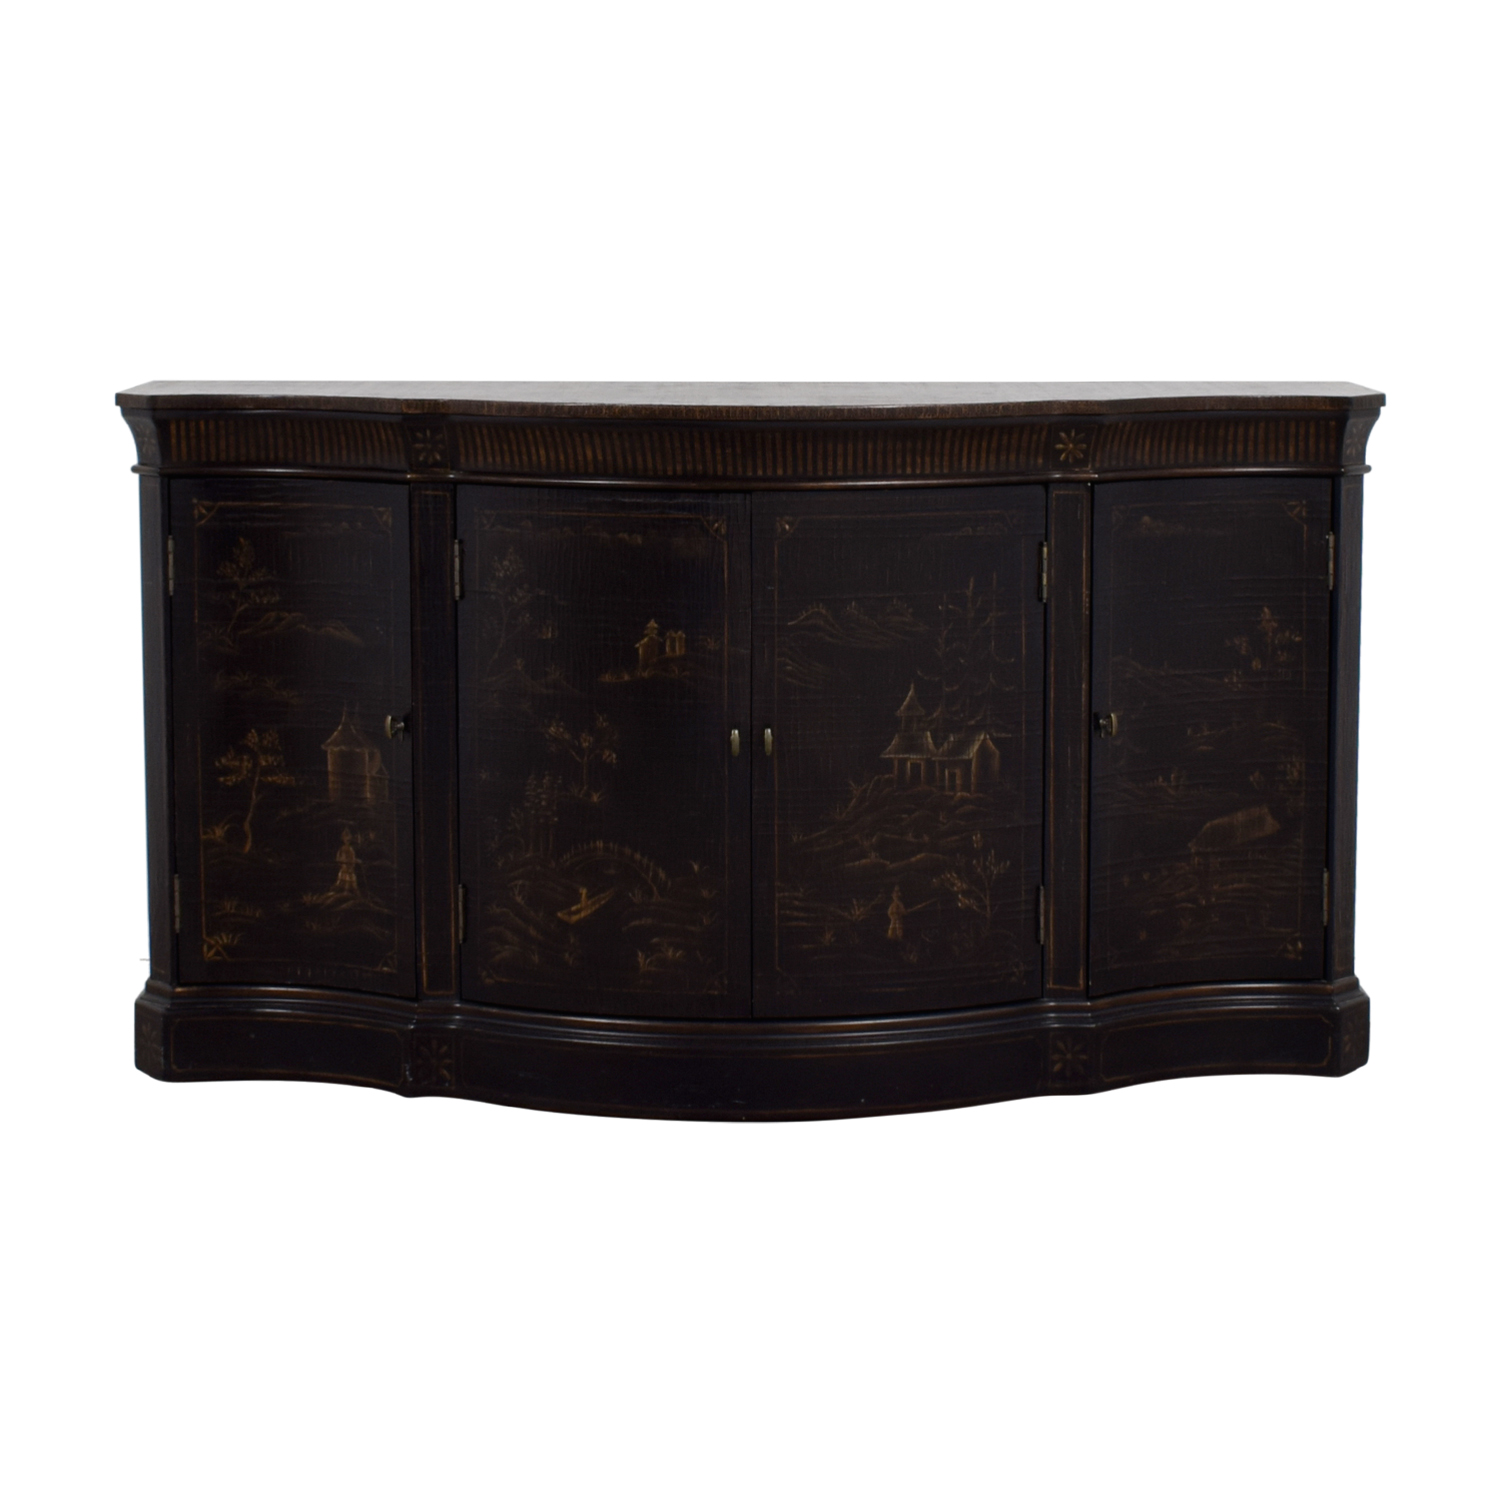 Ethan Allen Ethan Allen Asian Etched Sidebar Buffet on sale